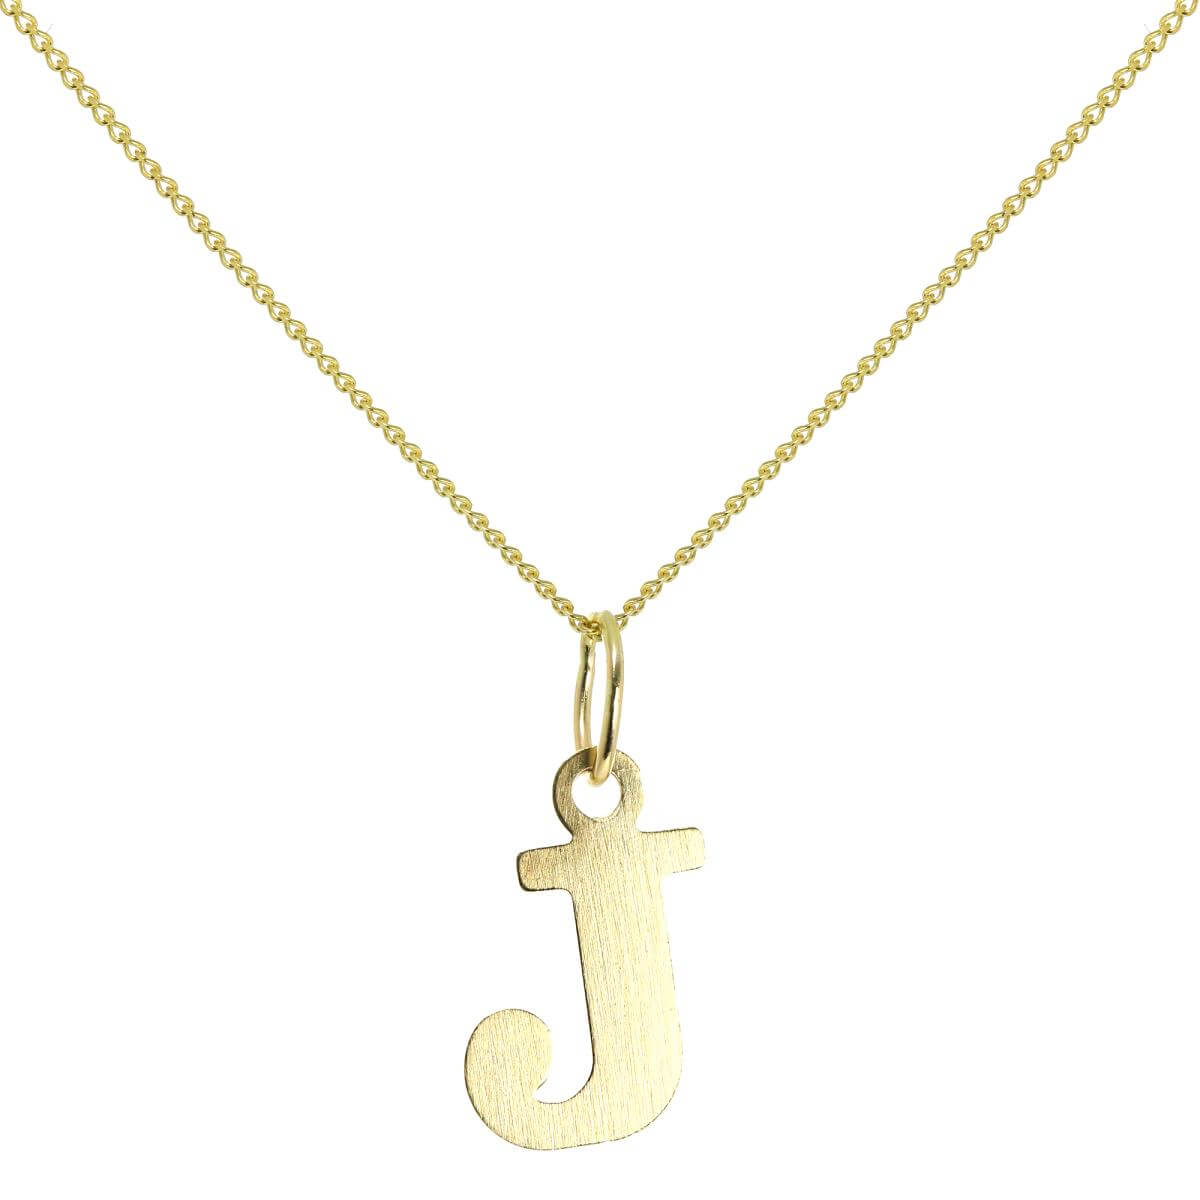 Lightweight 9ct Gold Initial Letter J Charm - 20 Inches